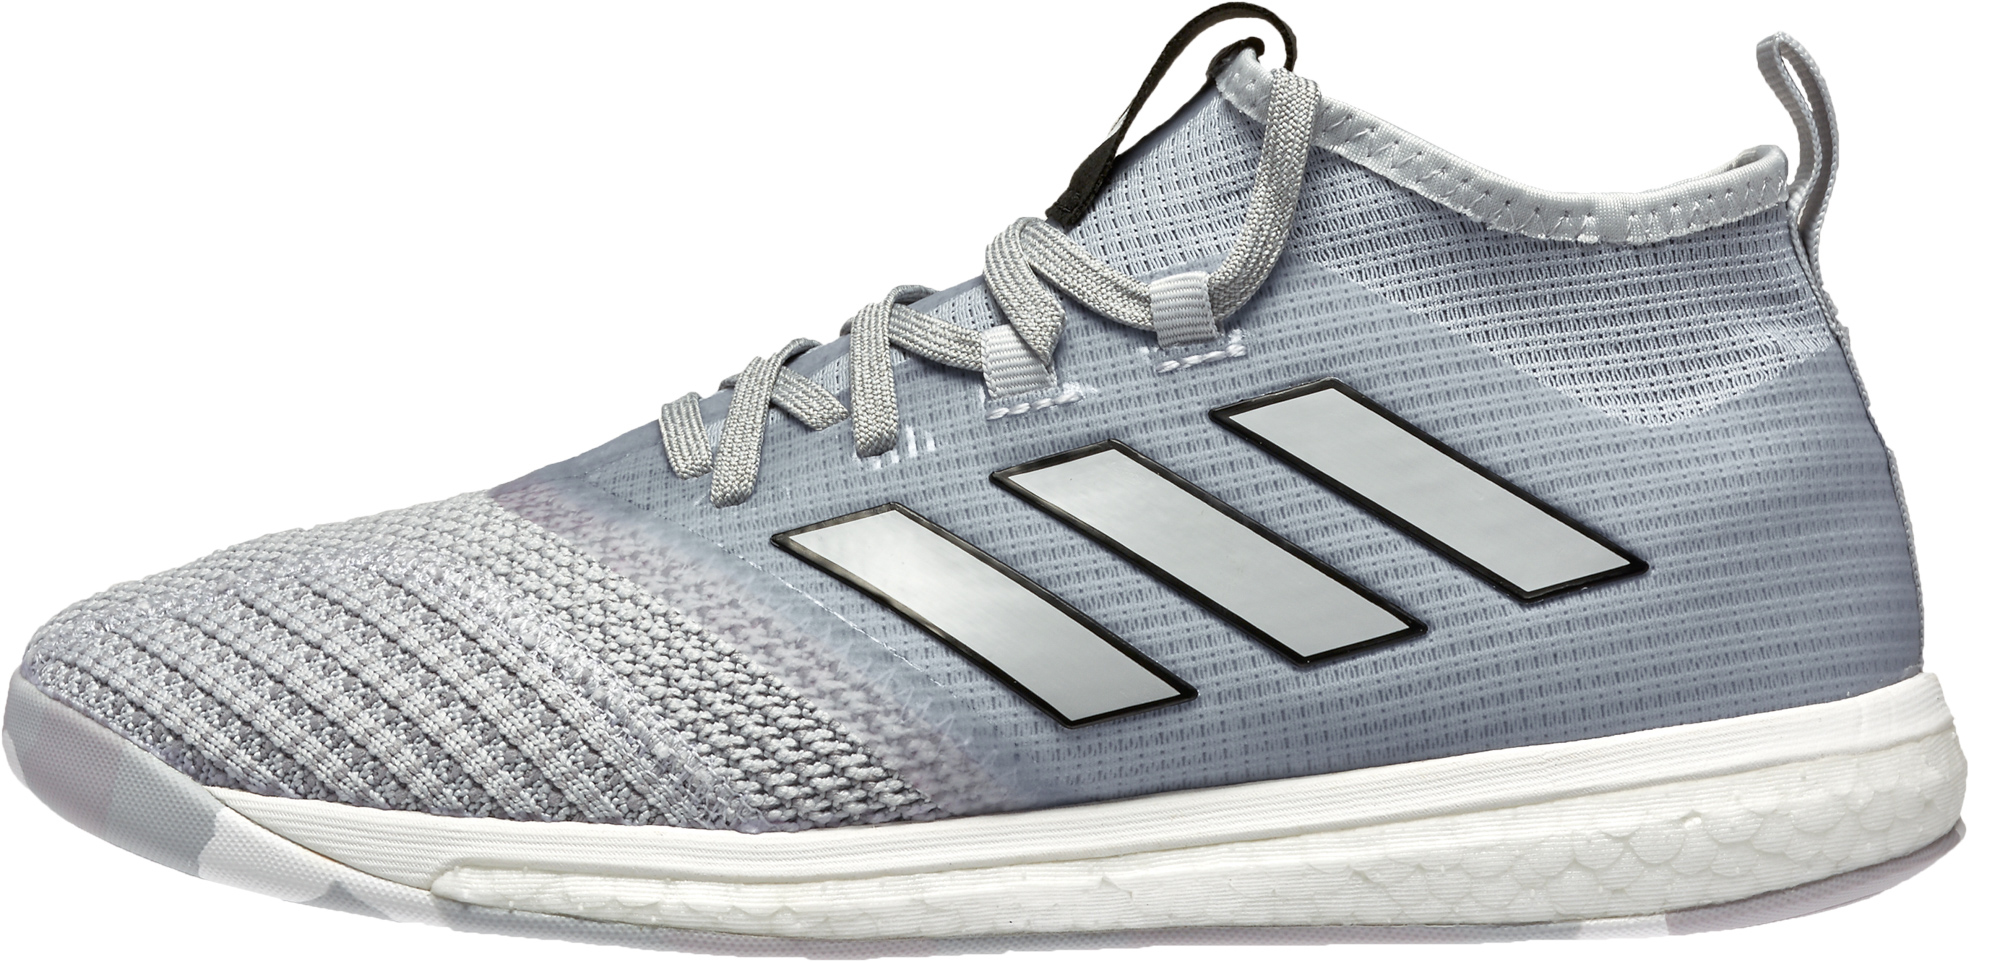 purchase cheap c2c75 c0e56 Grey adidas ACE Tango 17.1 Trainer - SoccerPro.com